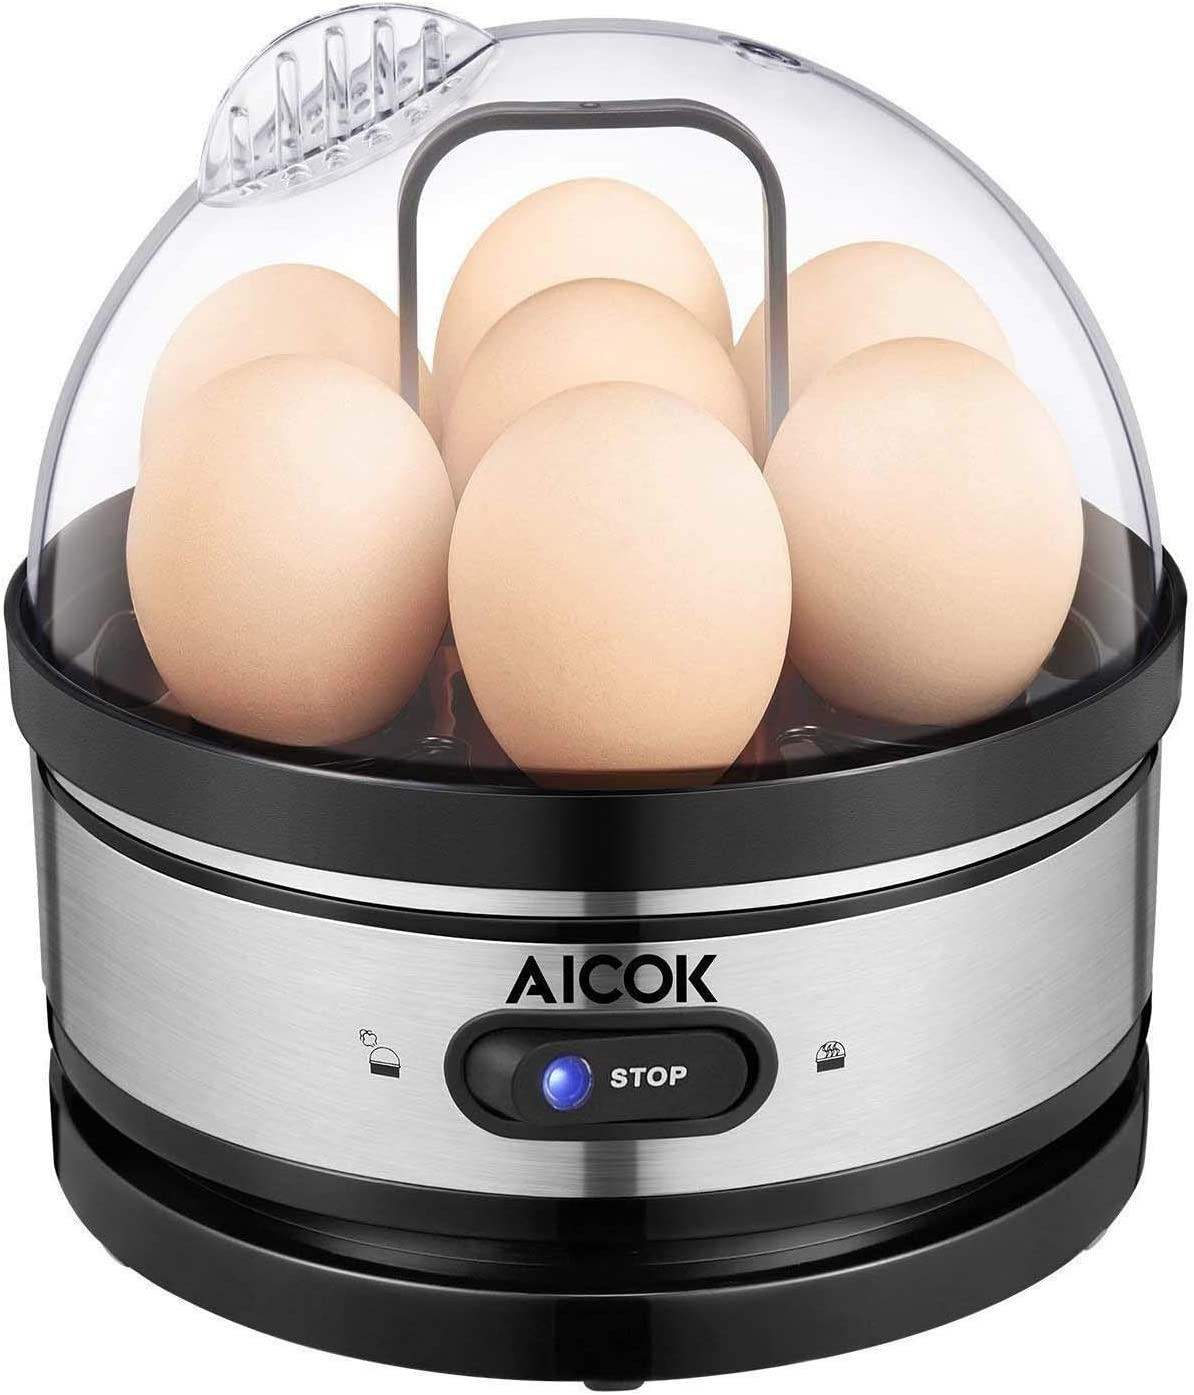 Egg cooker, AICOK Stainless Steel 7 Egg Capacity Rapid Egg Boiler with 2 BPA-Free Poachers 2 Heating Modal, Electric Egg Steamer for Hard Boiled Eggs, Poached Eggs, Omelets, Auto Power Off